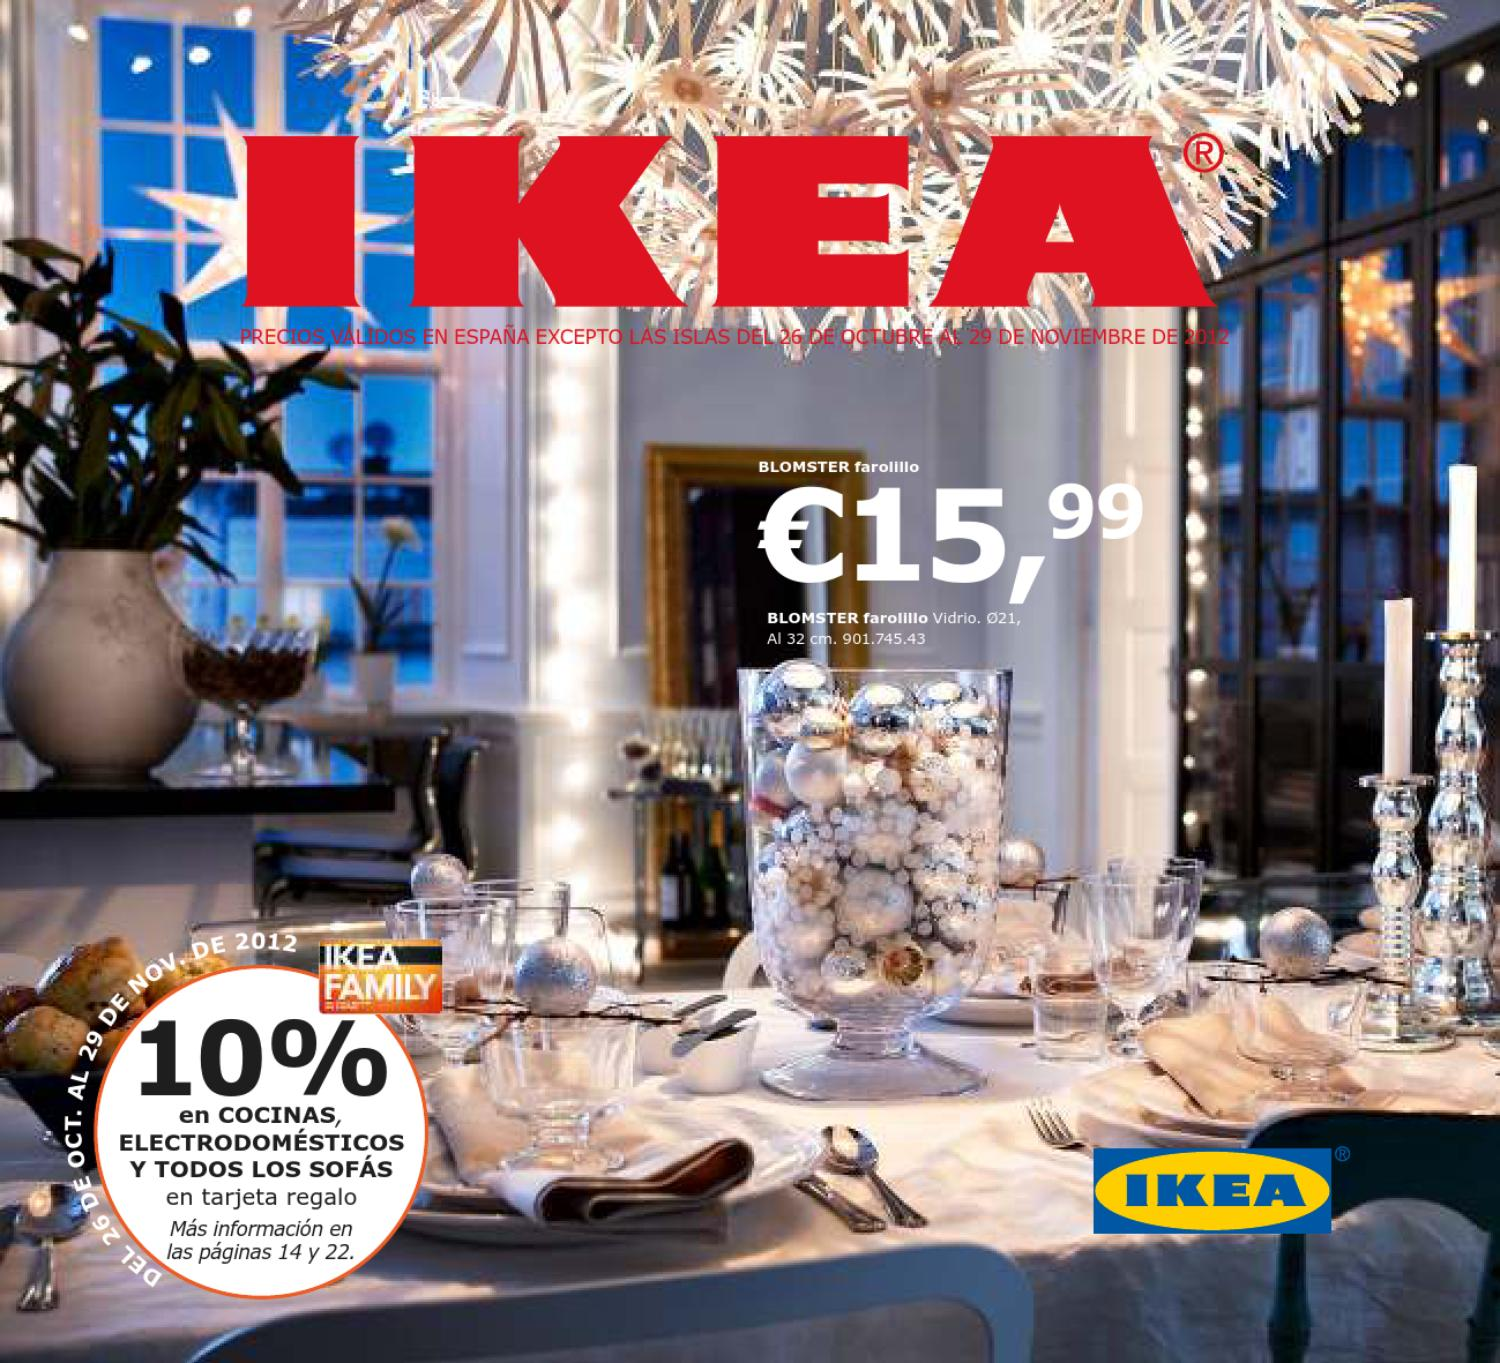 Issuu catalogo ikea decoracion de navidad 2012 2013 by - Catalogo ikea 2013 espana ...